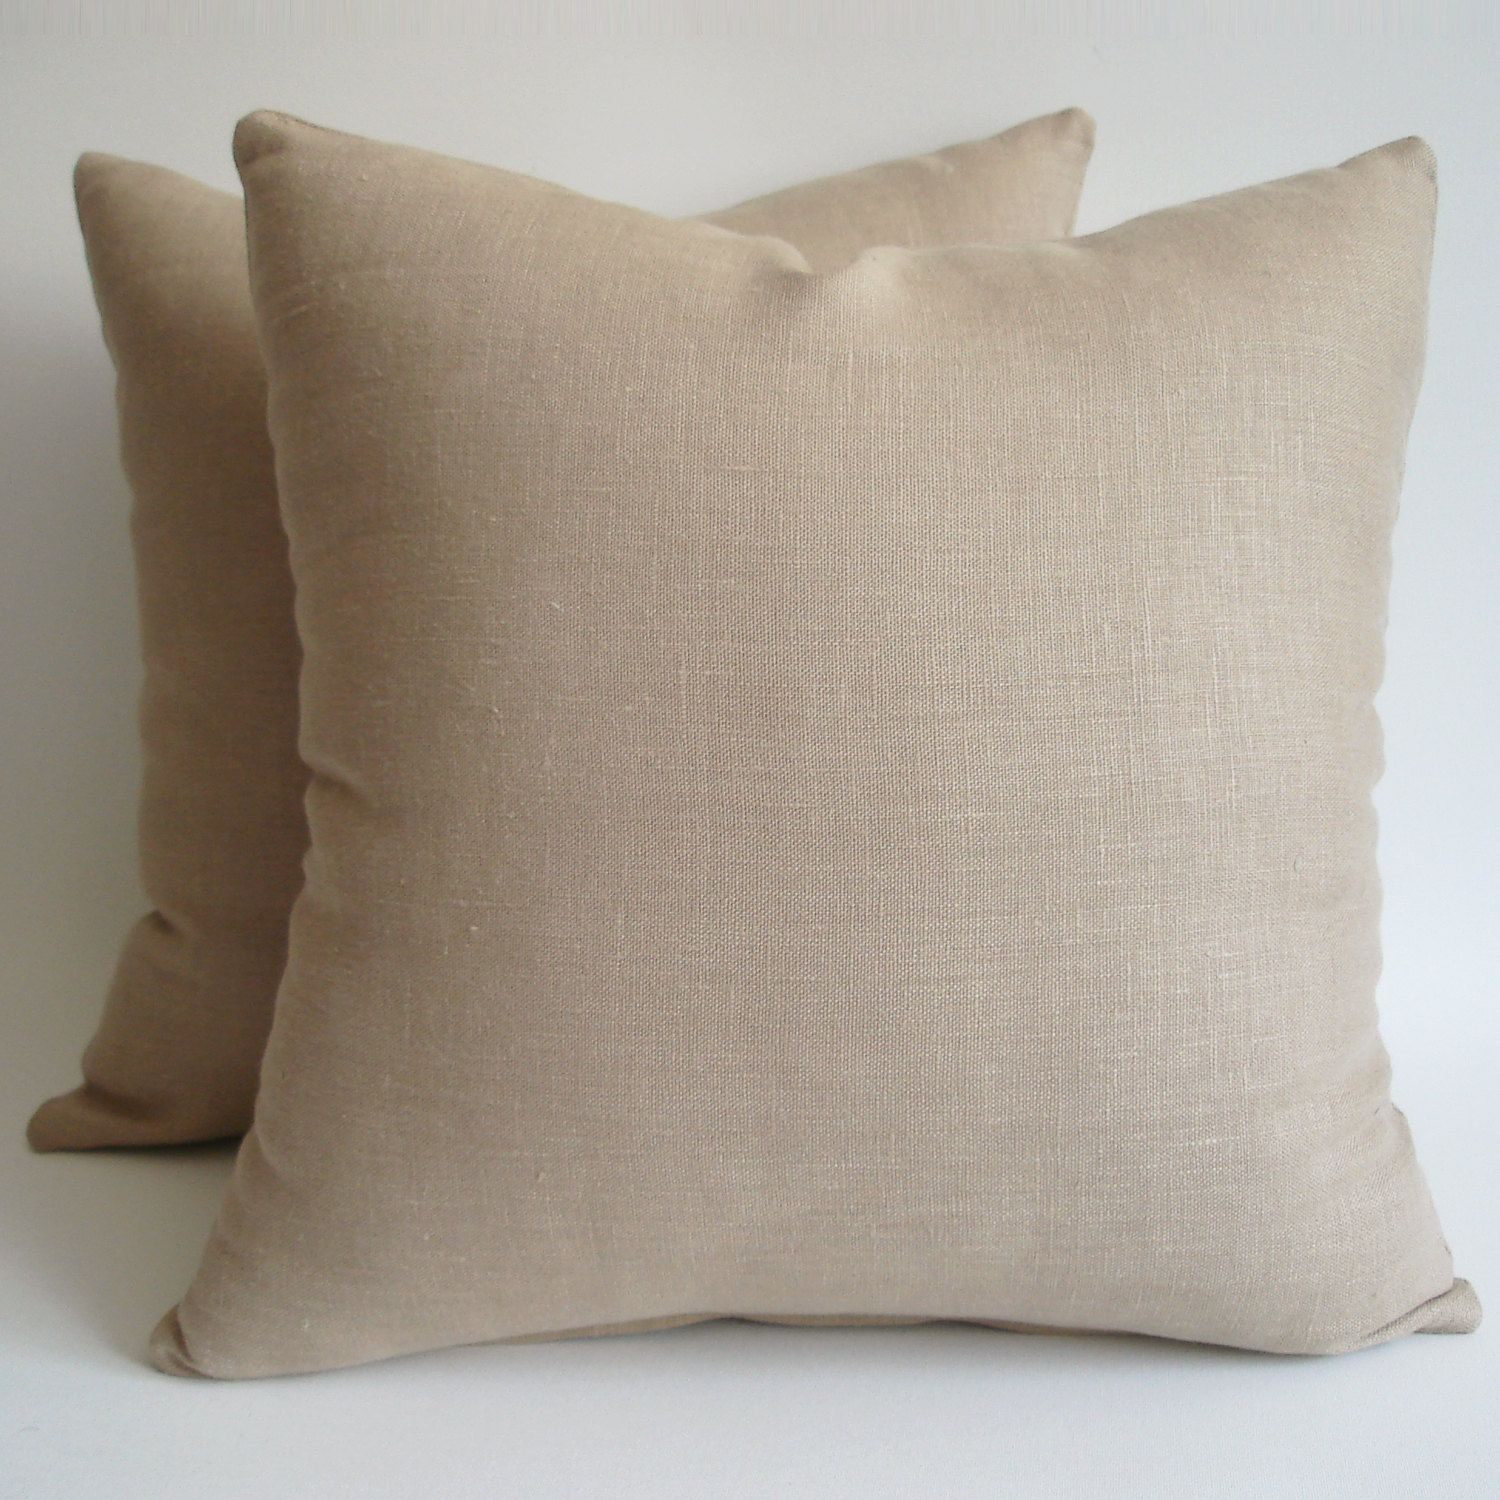 Decorative Pillow Set Sukan Set2 Piece Off Beige Linen Pillows Decorative Pillows